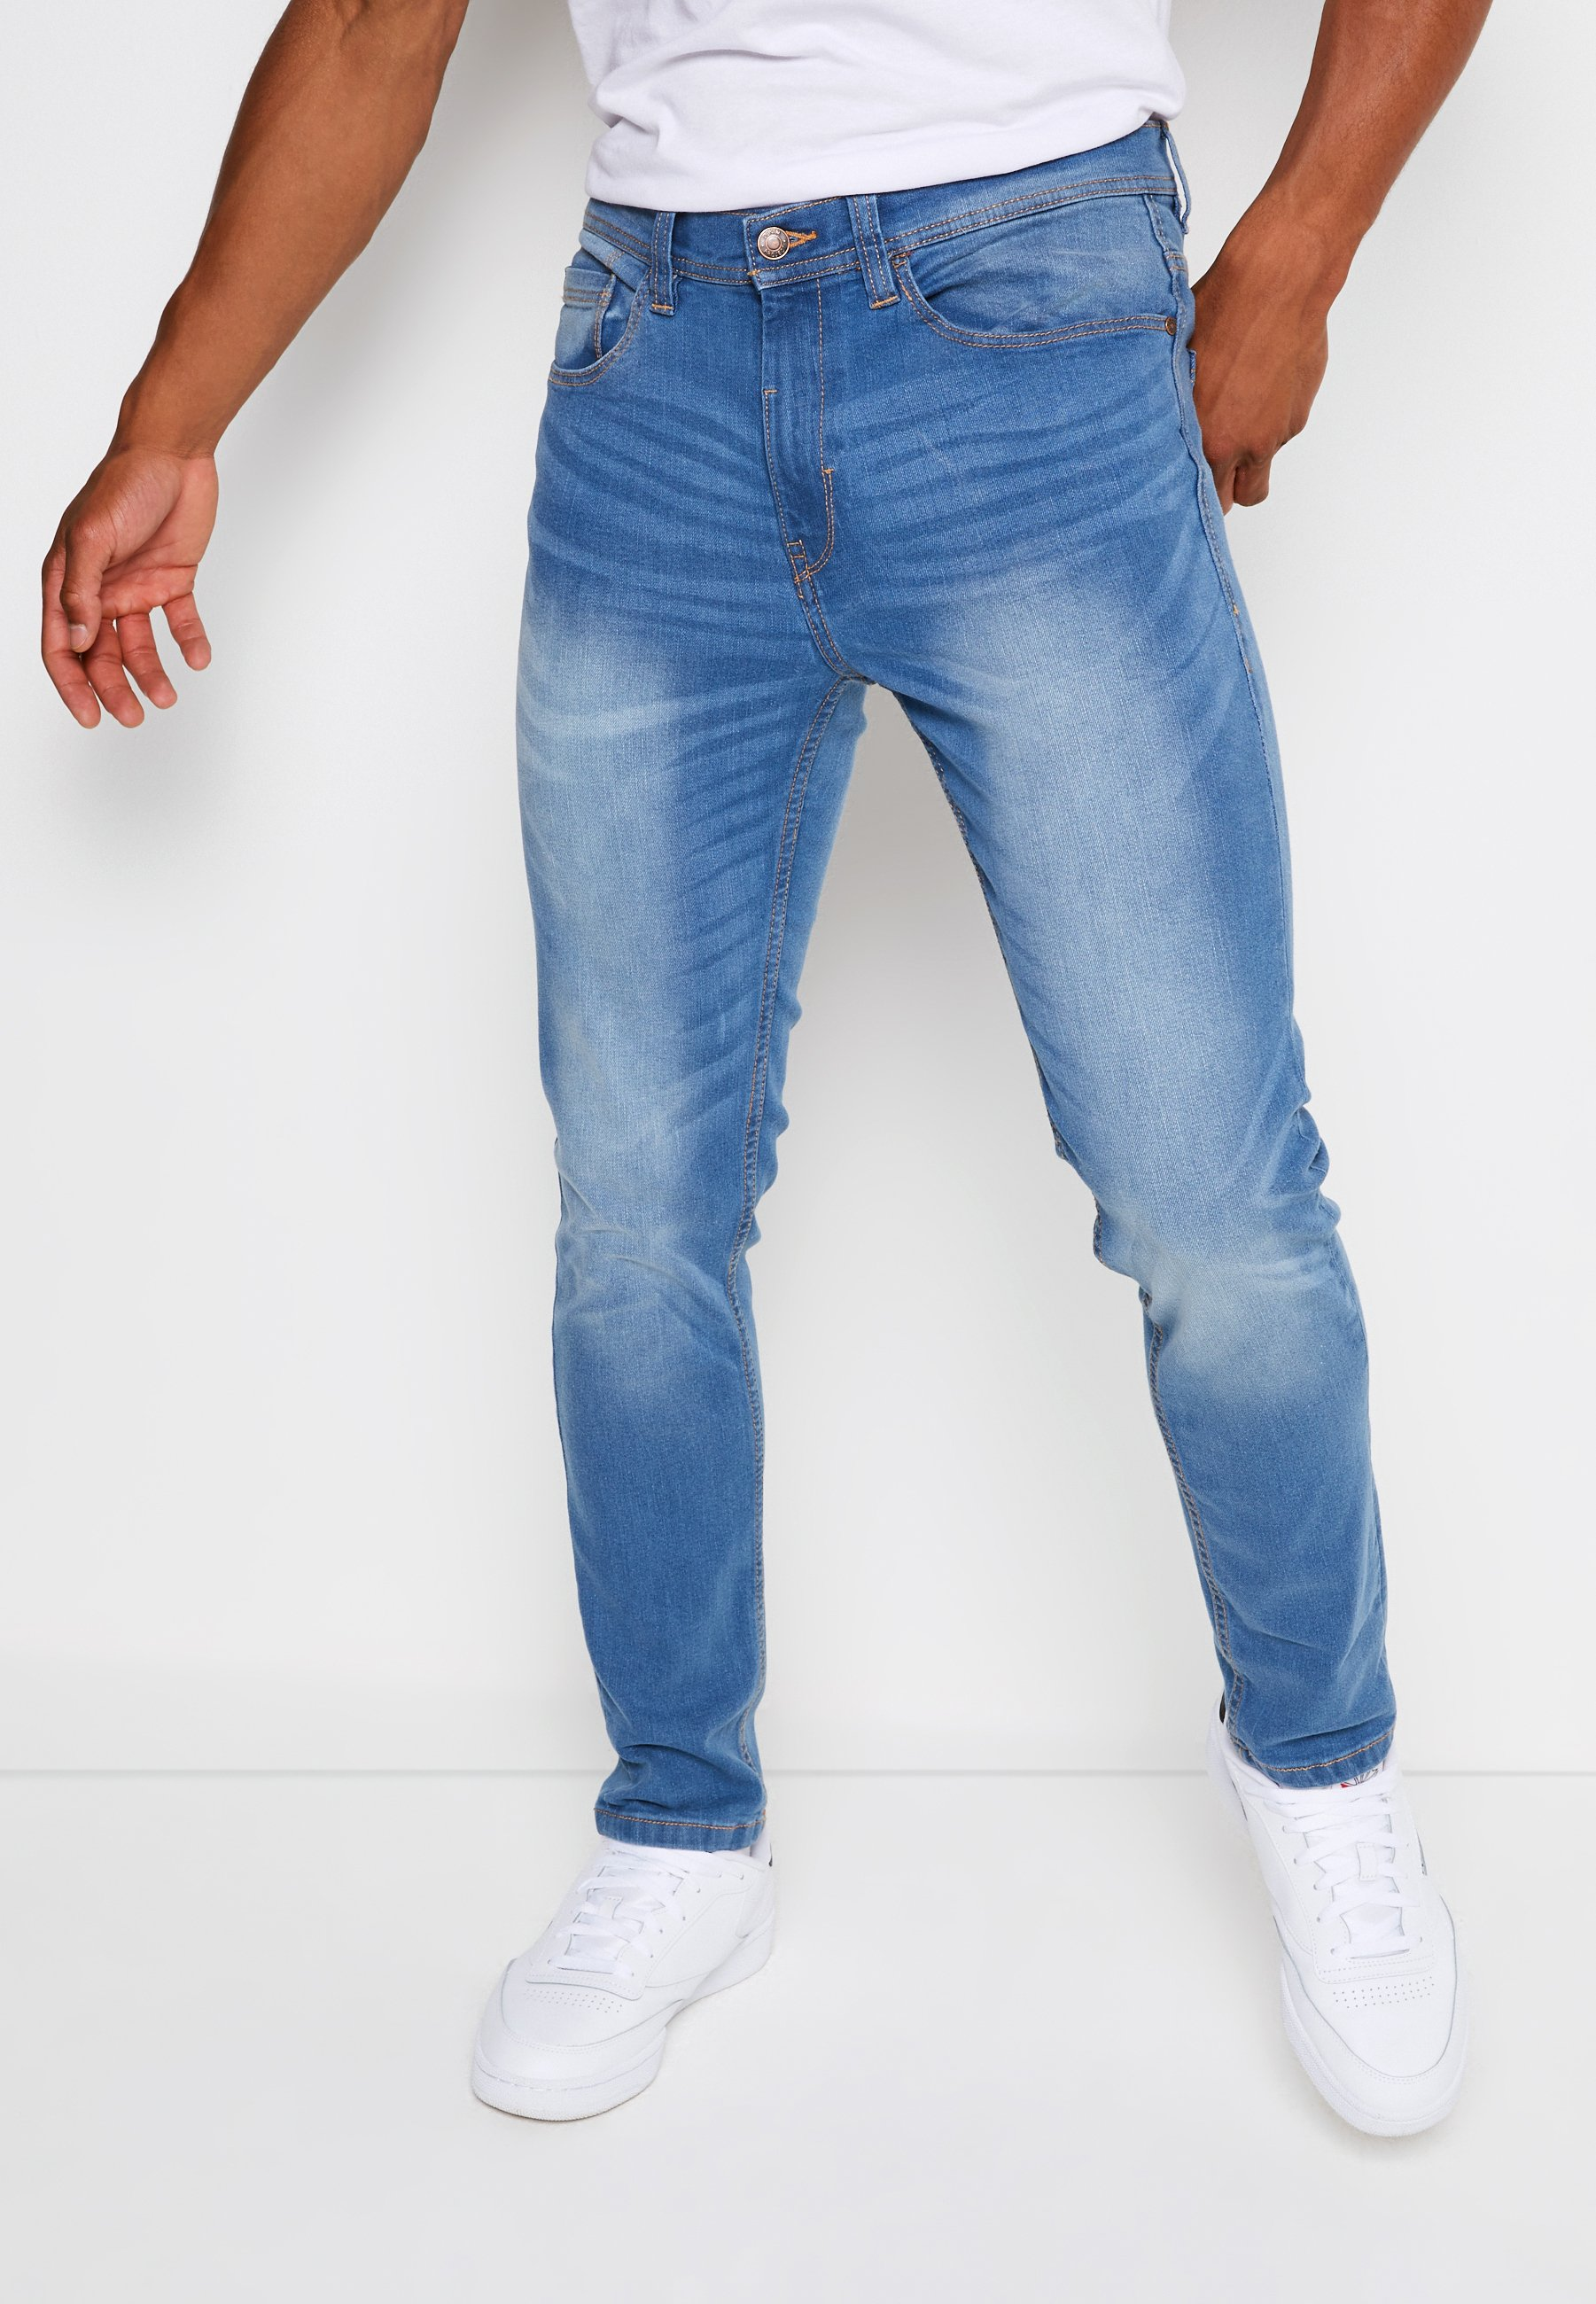 Uomo Jeans Tapered Fit